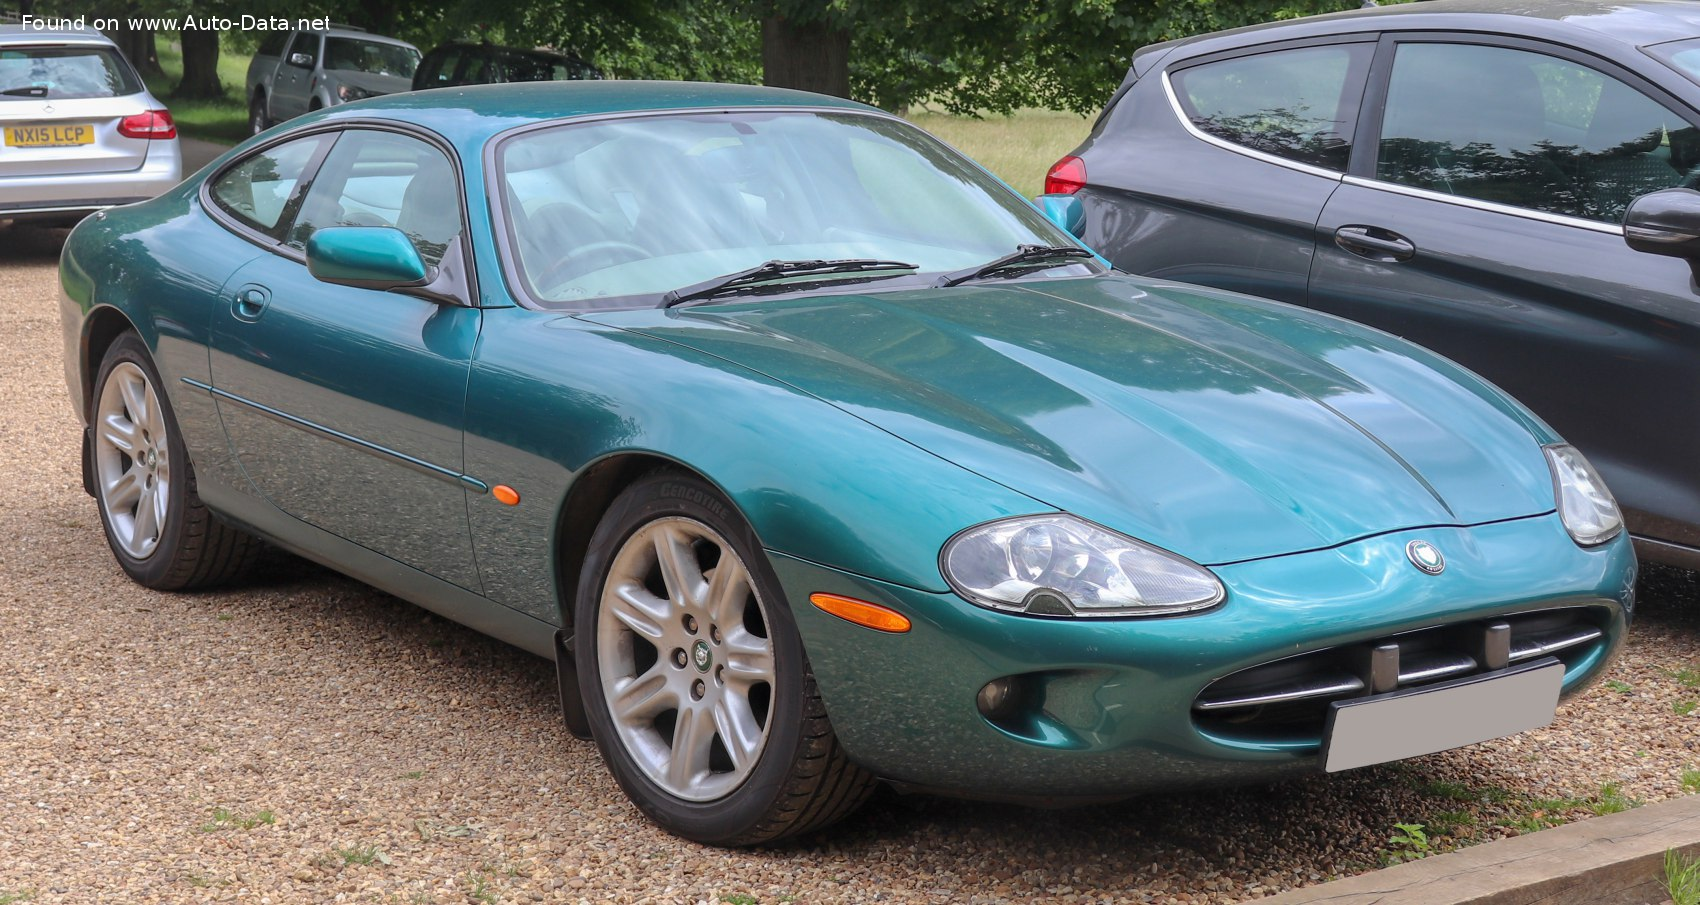 2002 Jaguar Xk Coupe X100 Xkr 4 2 V8 395 Hp Automatic Technical Specs Data Fuel Consumption Dimensions